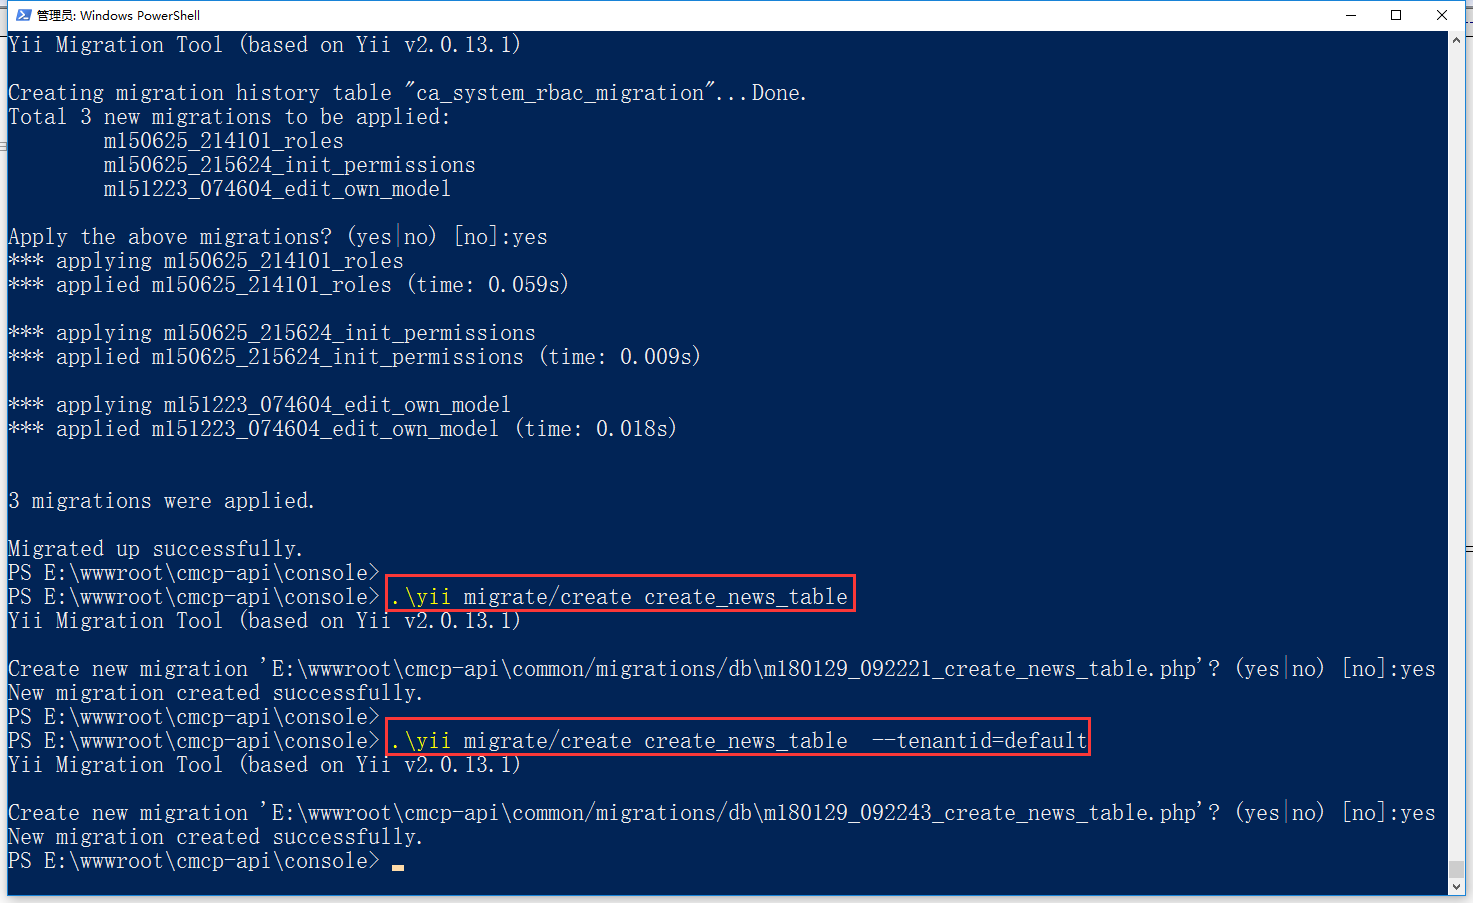 运行命令:.\yii migrate/create create_news_table、.\yii migrate/create create_news_table --tenantid=default,成功运行